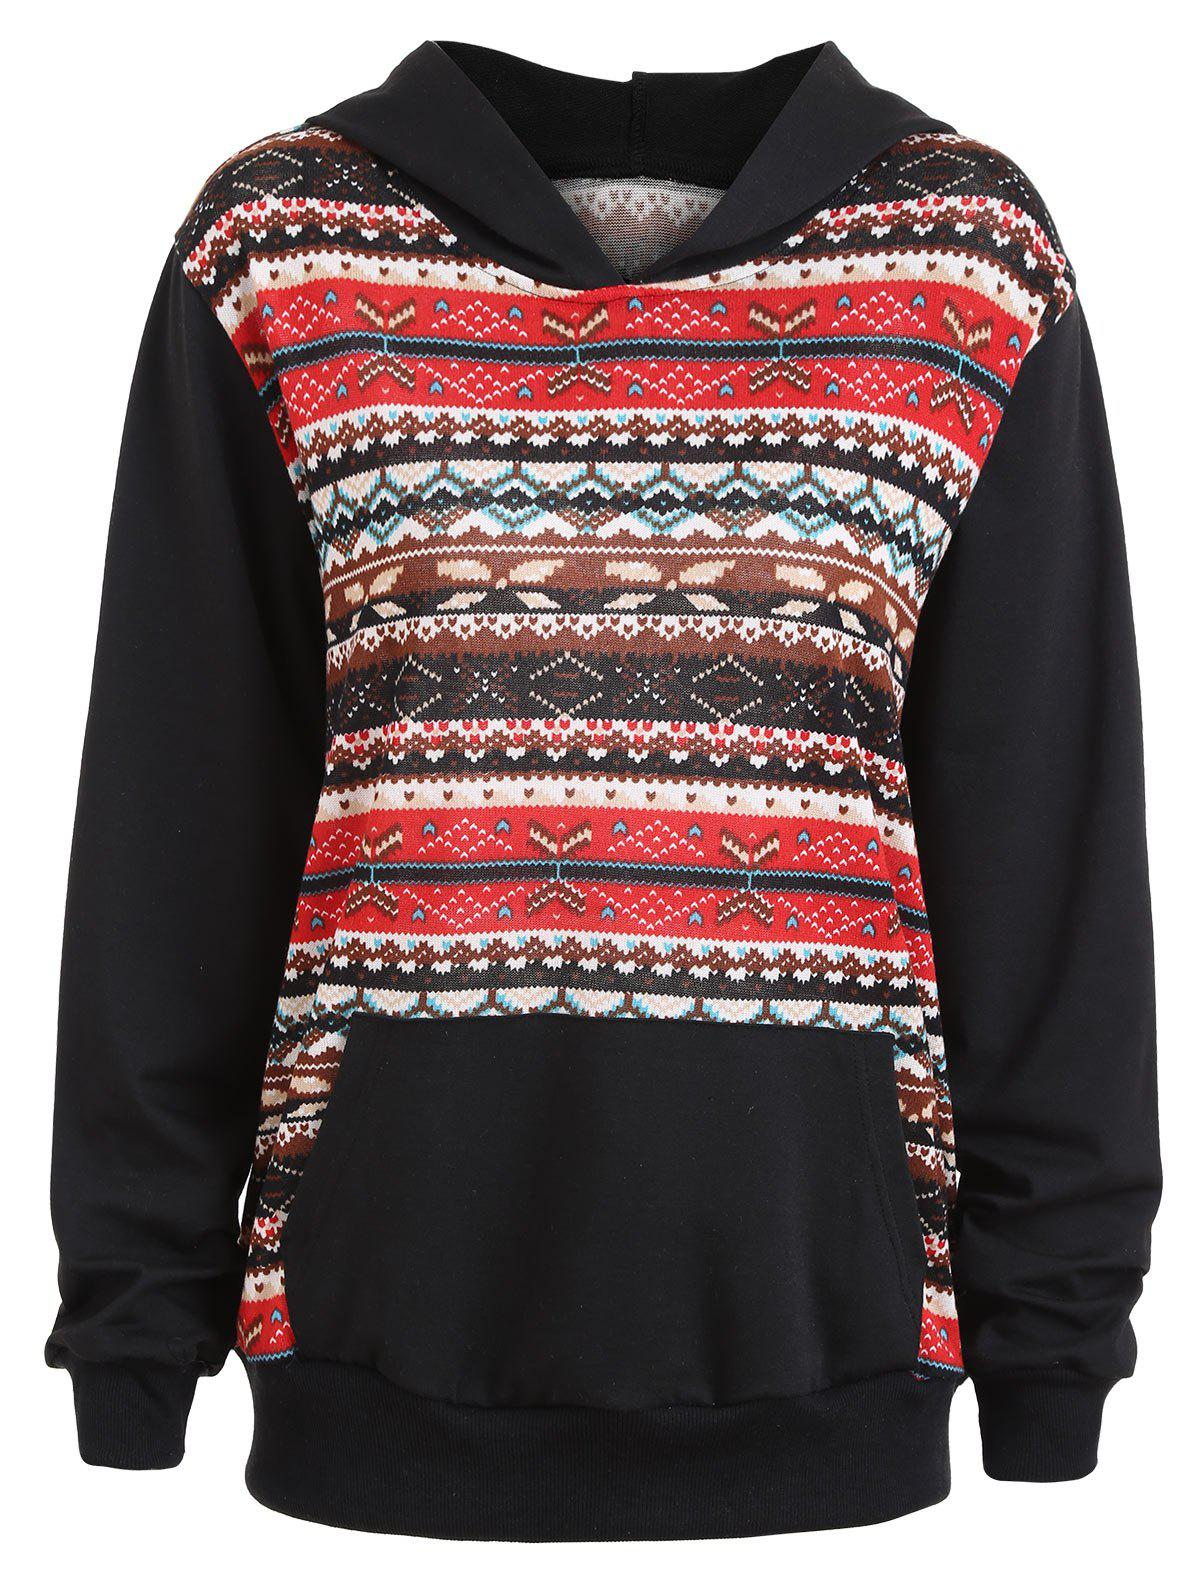 Plus Size Kangaroo Pocket Fair Isle HoodieWOMEN<br><br>Size: 5XL; Color: BLACK; Material: Polyester; Shirt Length: Regular; Sleeve Length: Full; Style: Fashion; Pattern Style: Geometric,Print; Embellishment: Front Pocket; Season: Fall,Winter; Weight: 0.4900kg; Package Contents: 1 x Hoodie;